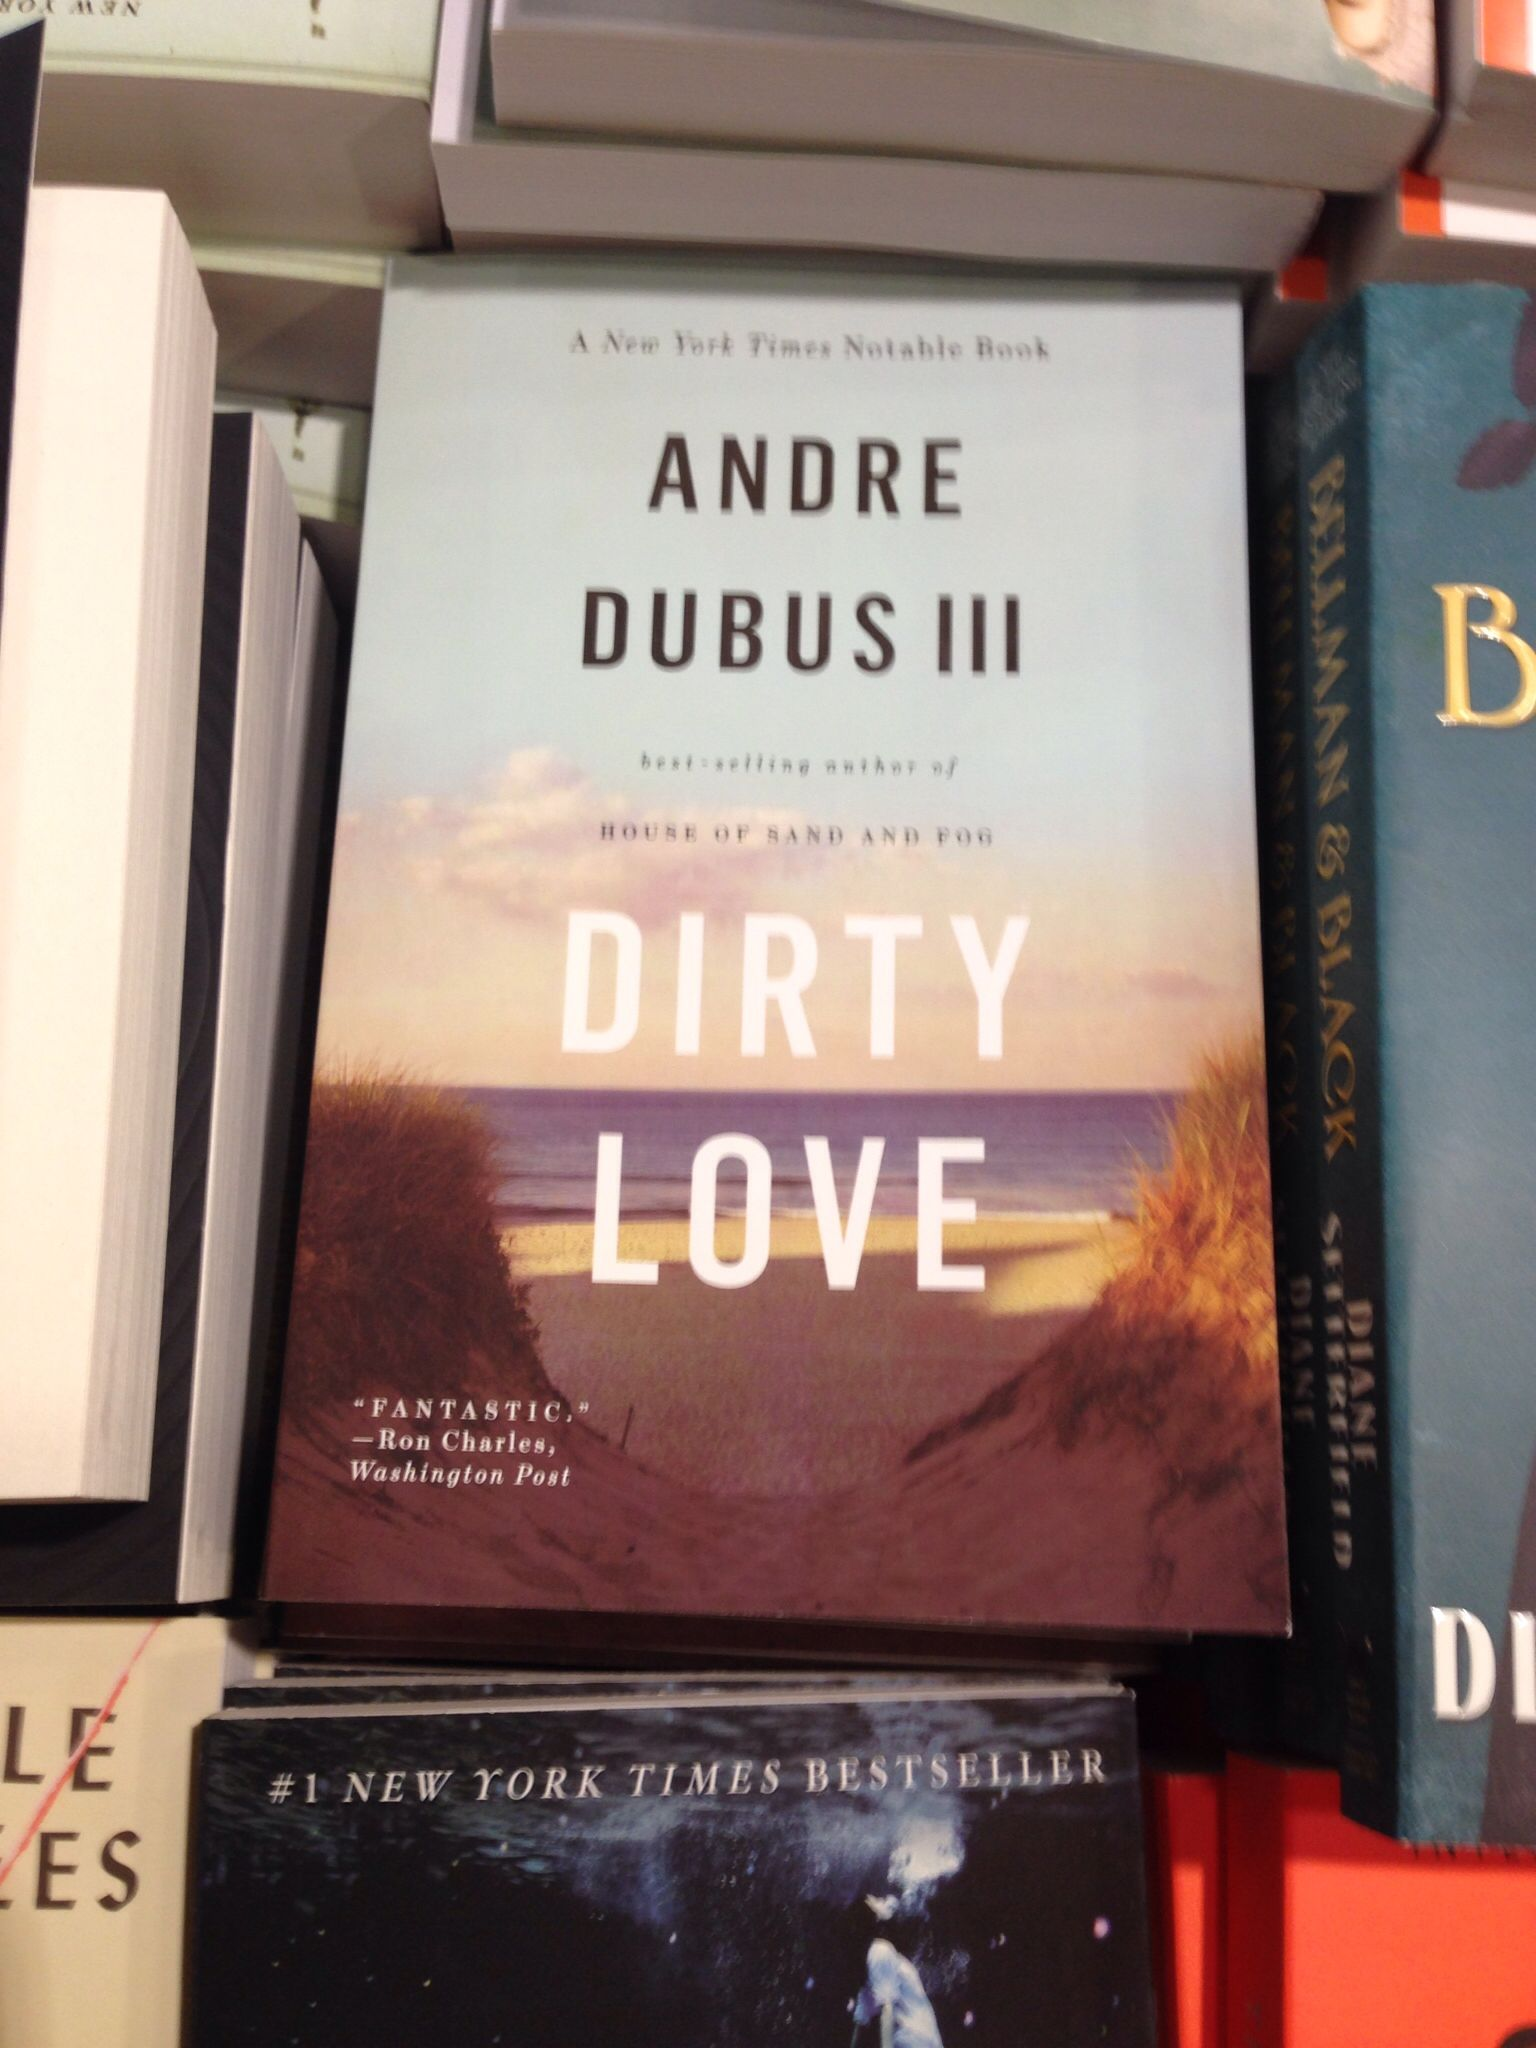 Dirty Love - Andre Dubus III | Ashland bookstore browsing | added to summer  reading list